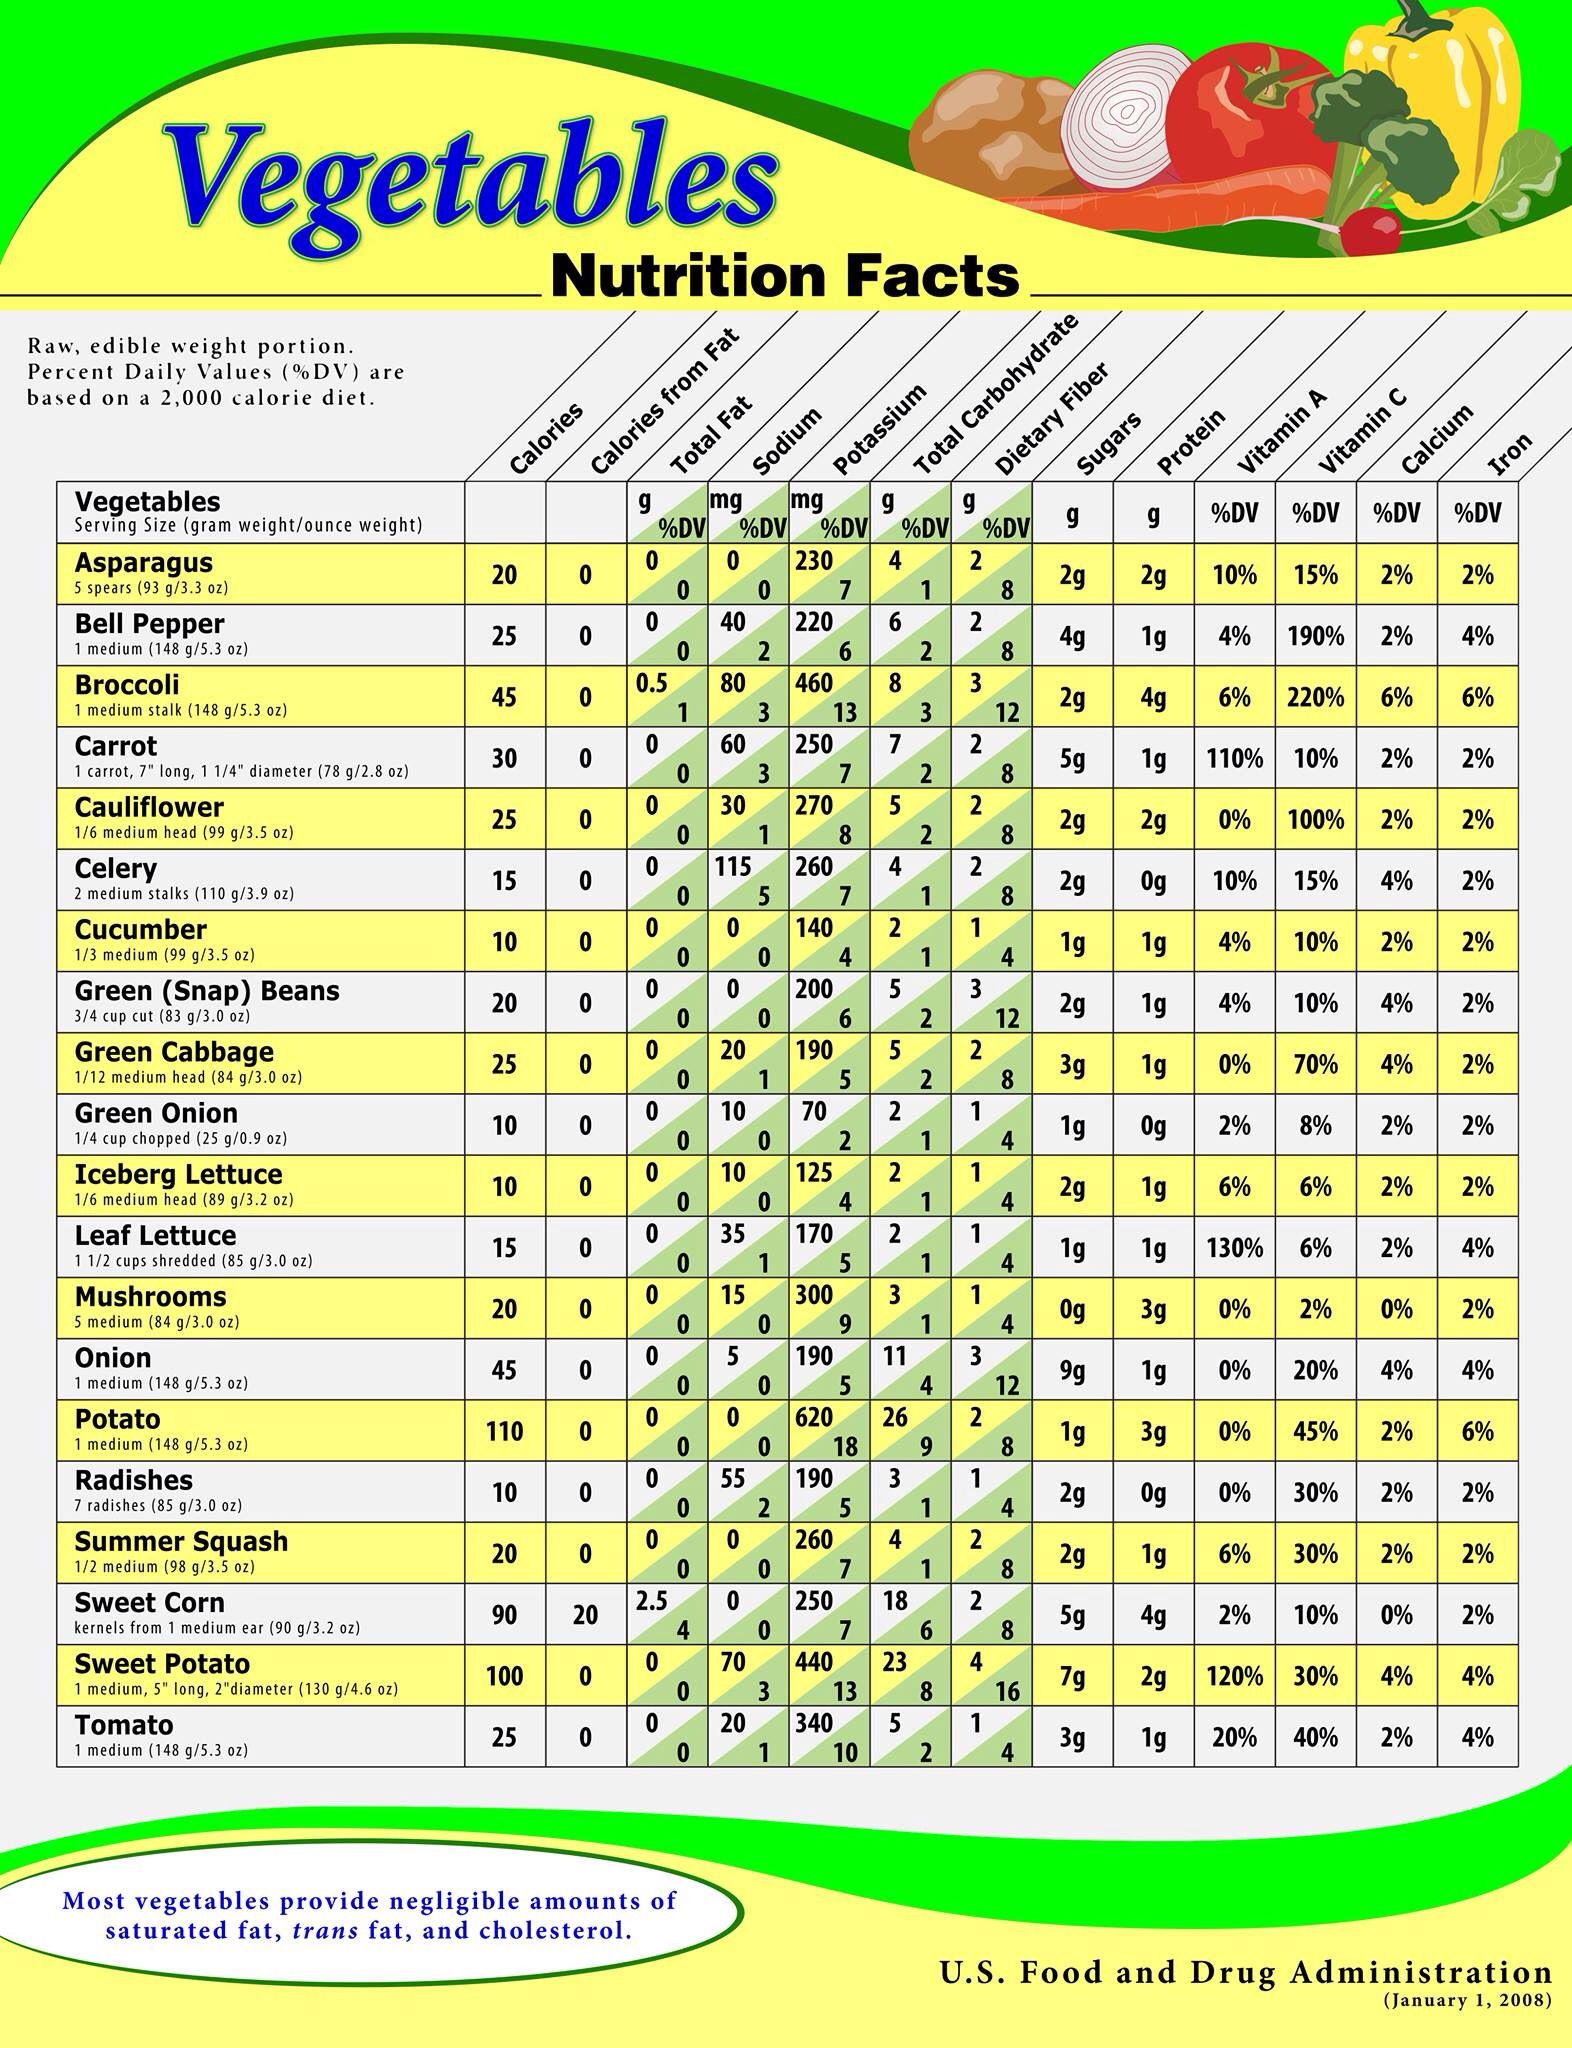 Mmmm veggie nutrition facts make me so happy nutrition facts calories in indian food chart indian food recipes images menu calorie chart thali photography pictures photos dishes items photos pics images forumfinder Image collections